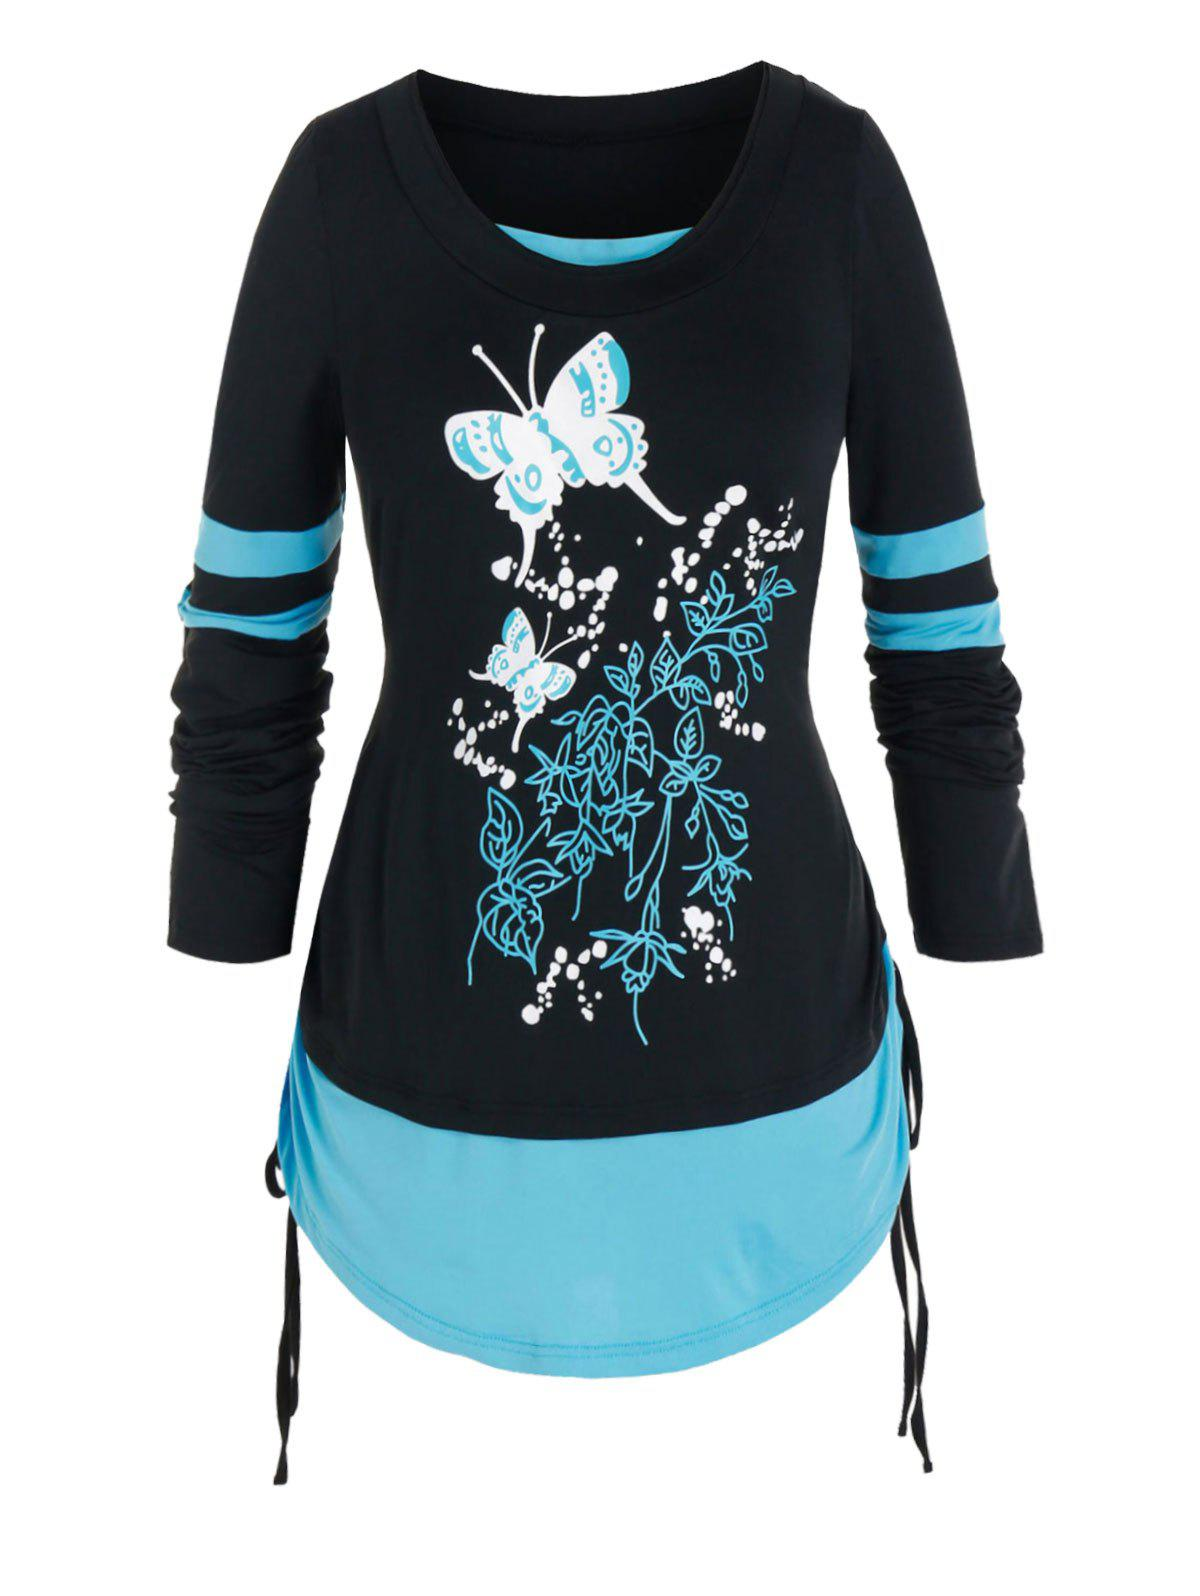 Plus Size Butterfly Twofer Cinched Long Sleeve Tee - BLACK 5X